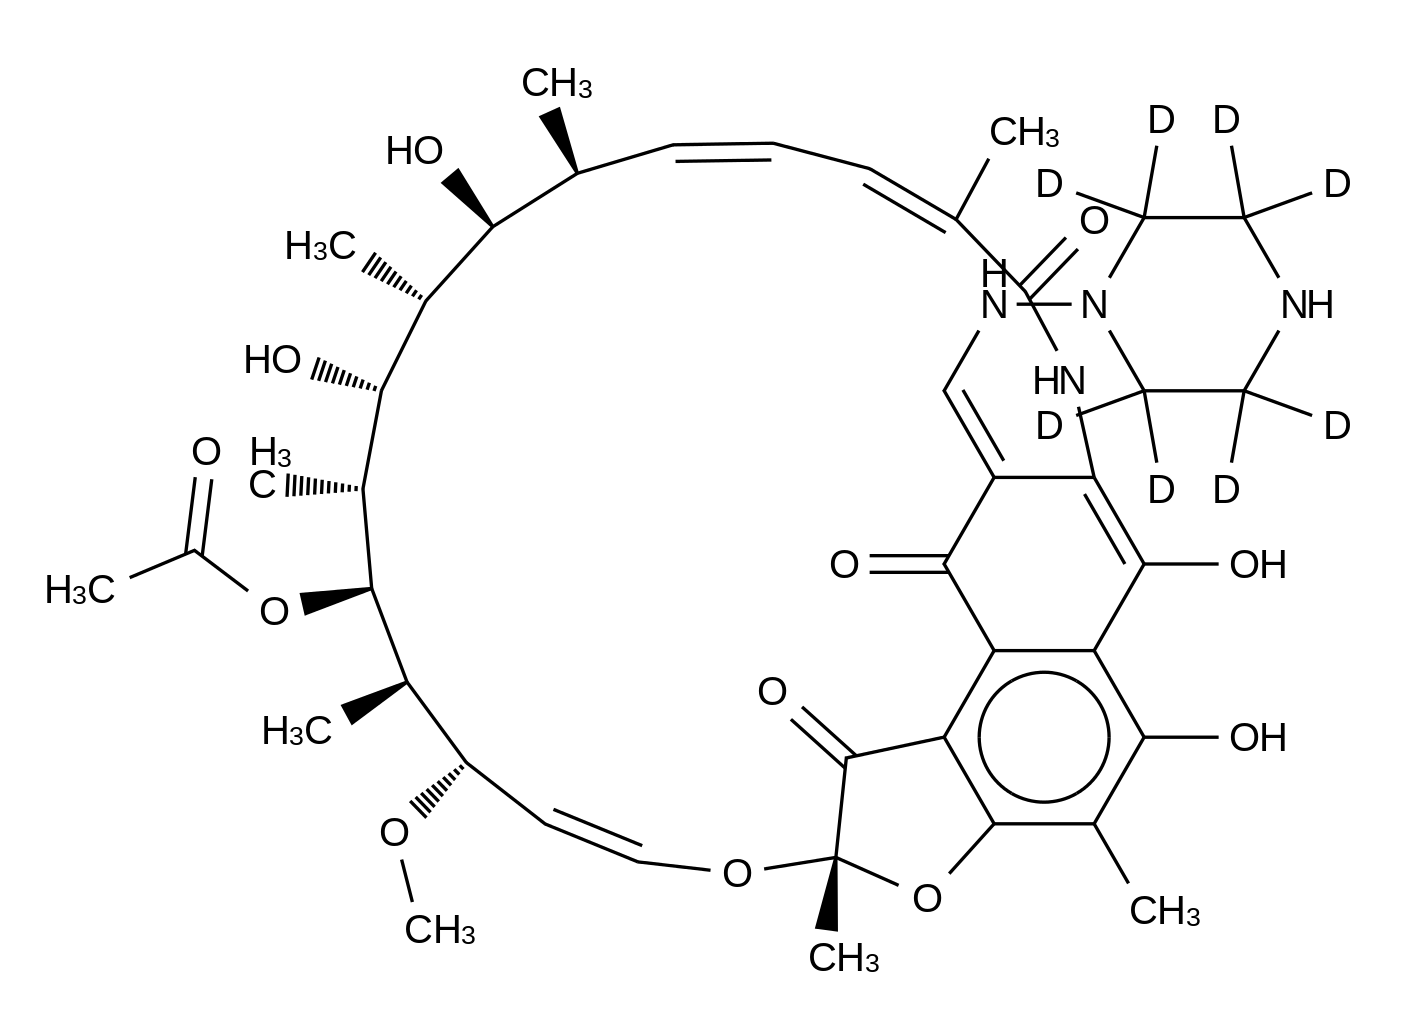 N-Demethyl Rifampin-d<sub>8</sub>